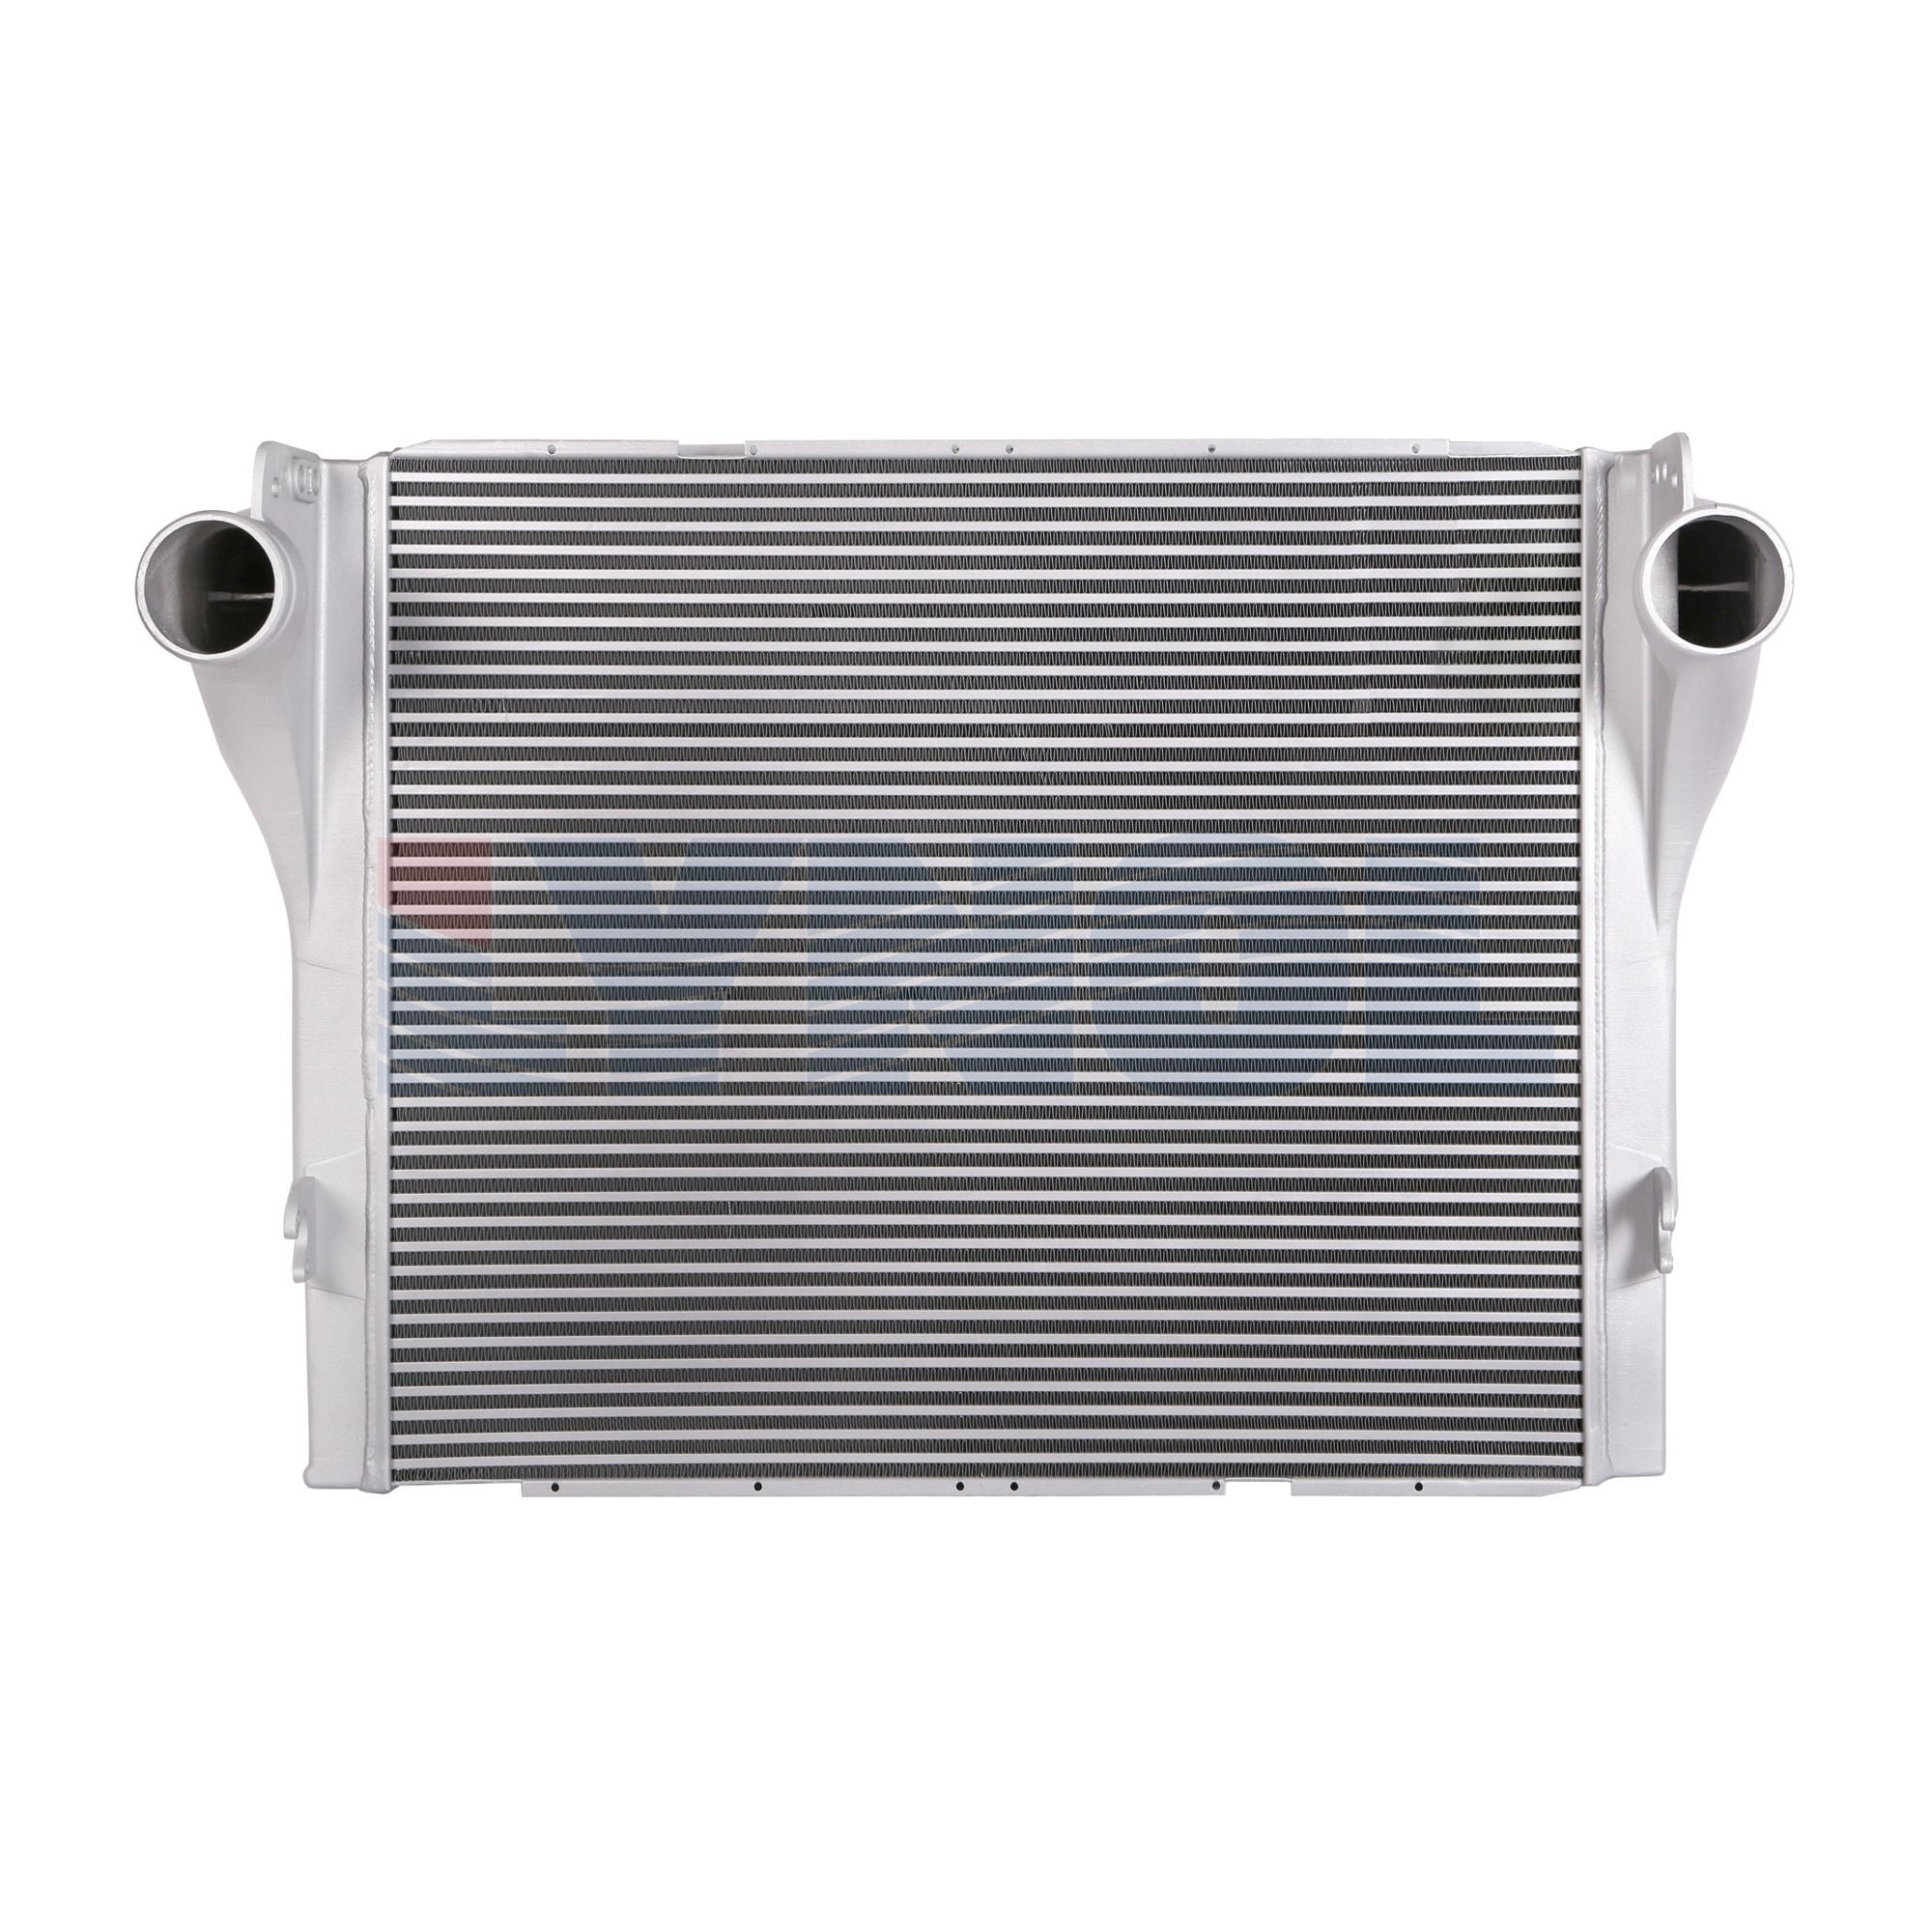 2401-002 - Peterbilt / Kenworth Charge Air Cooler